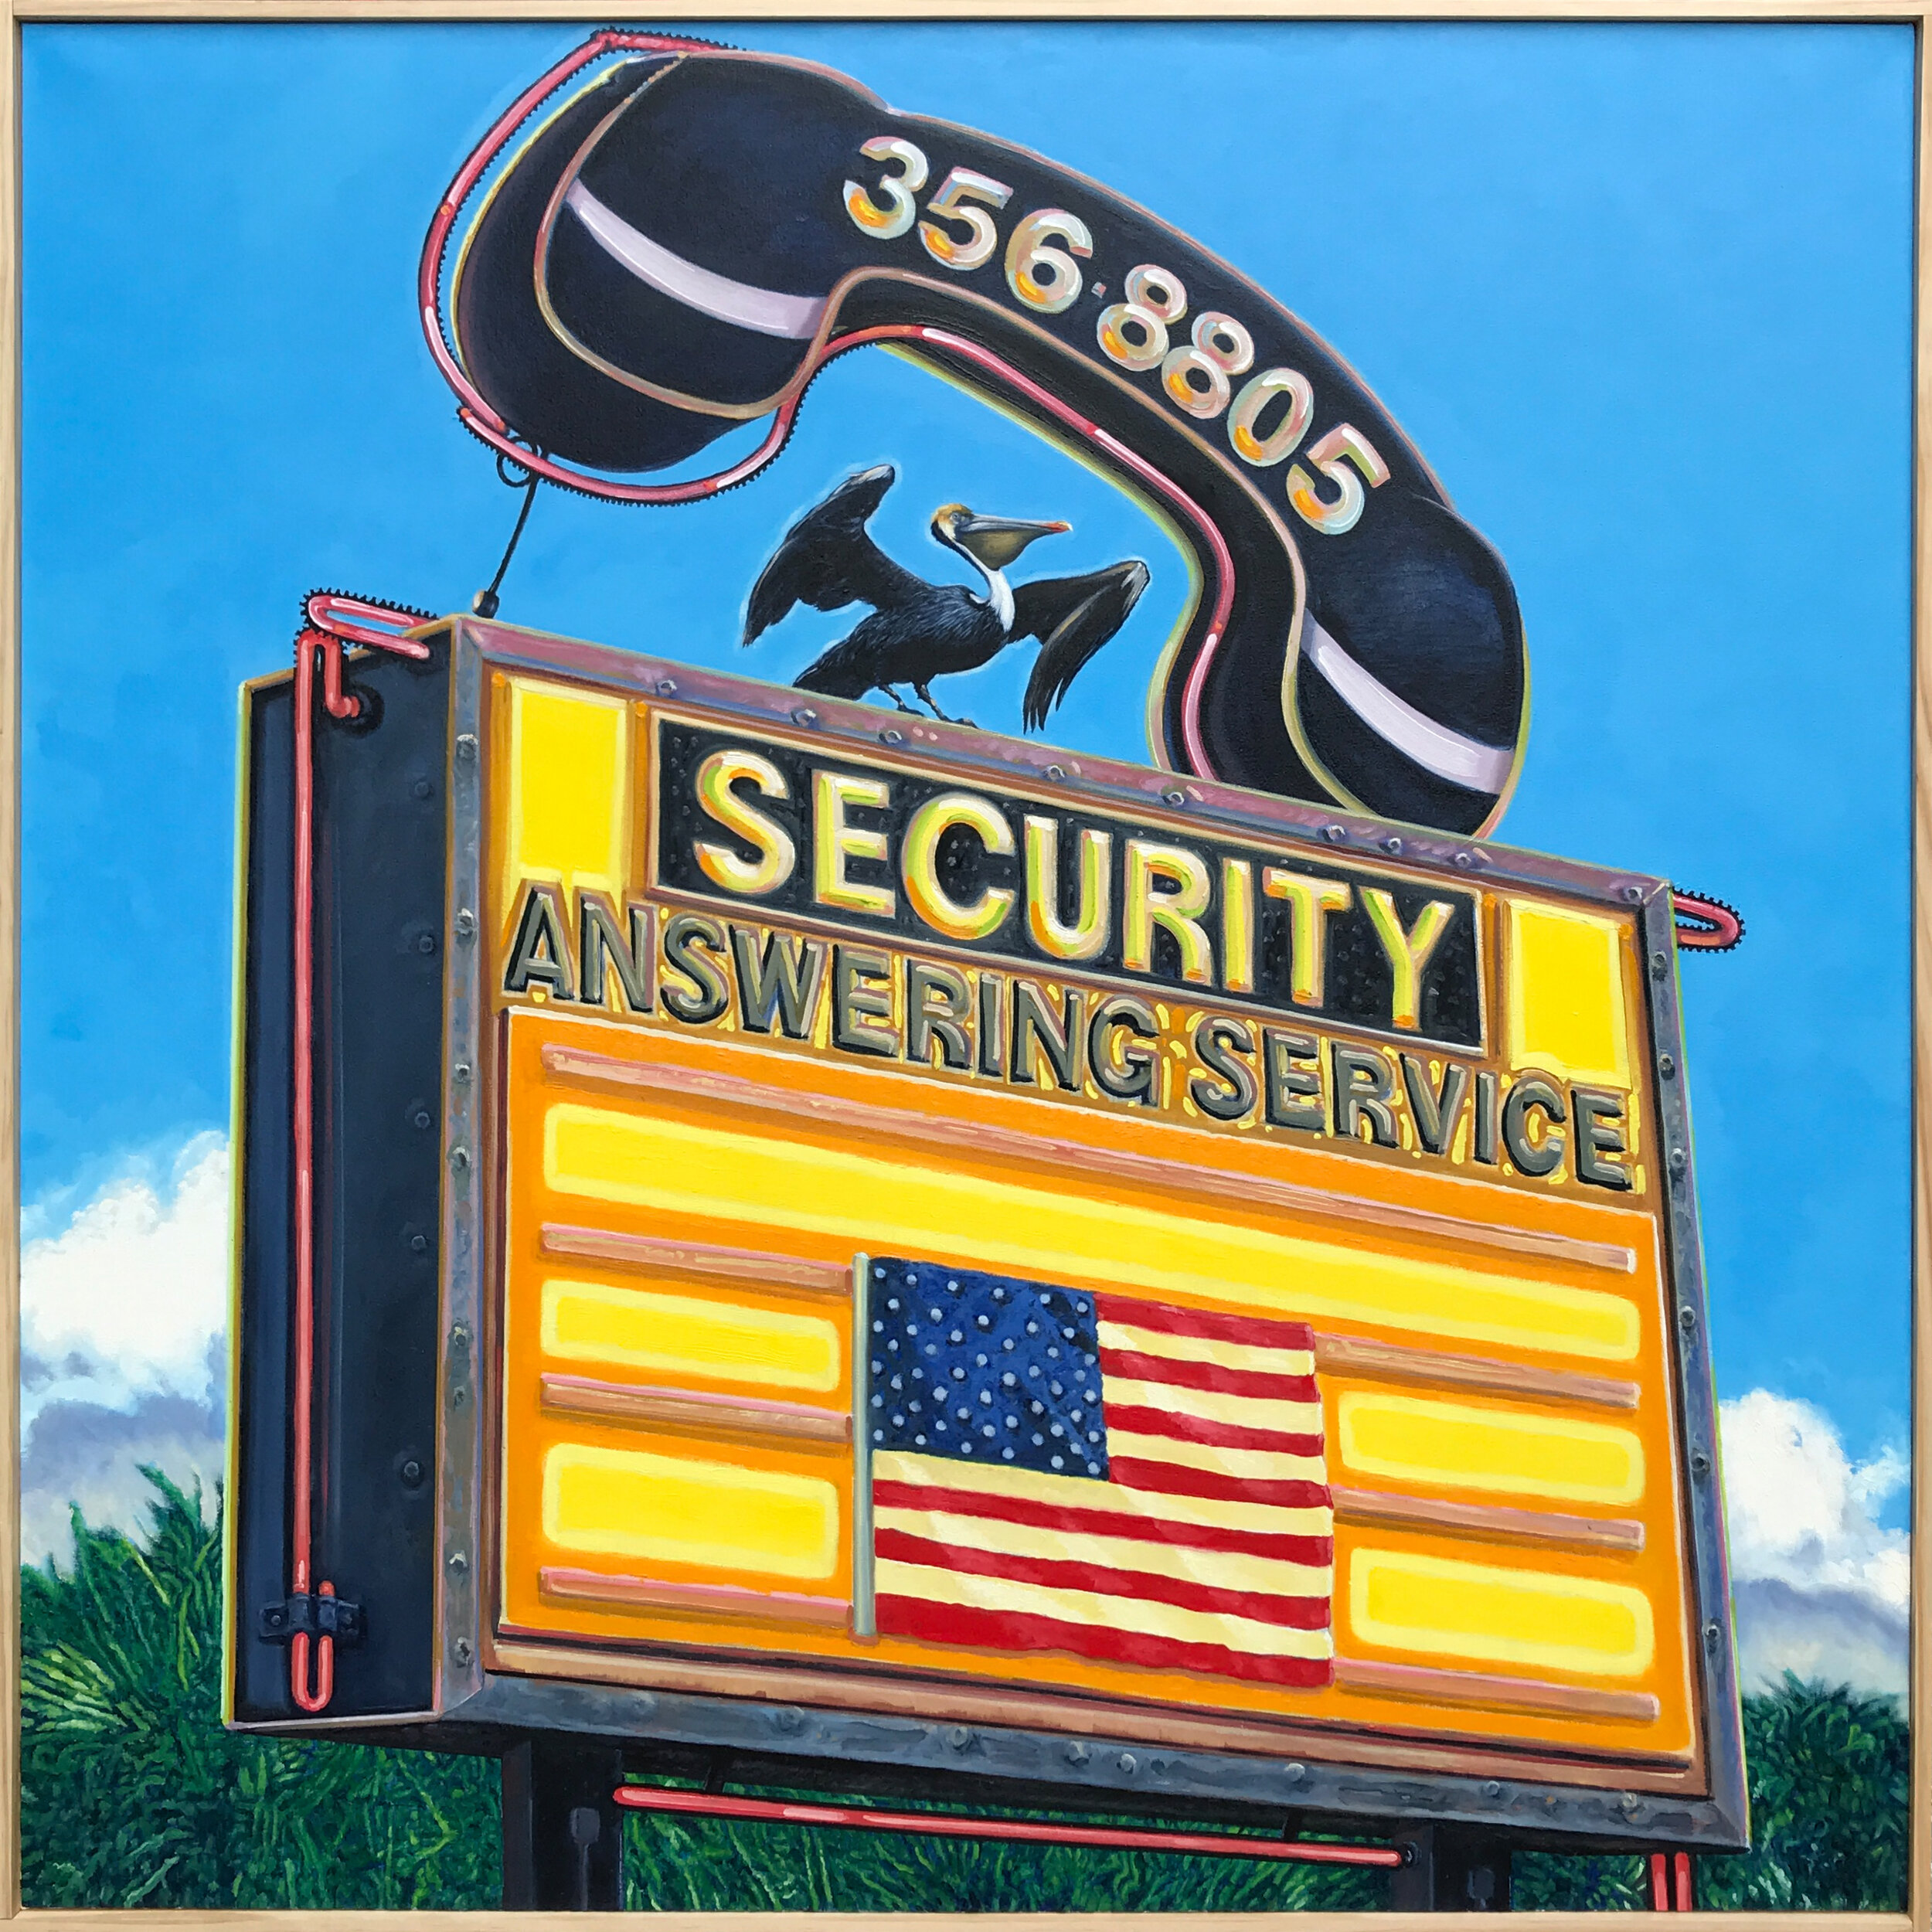 Security_Answering_Service_48in_x_48in_OilOnCanvas.JPG